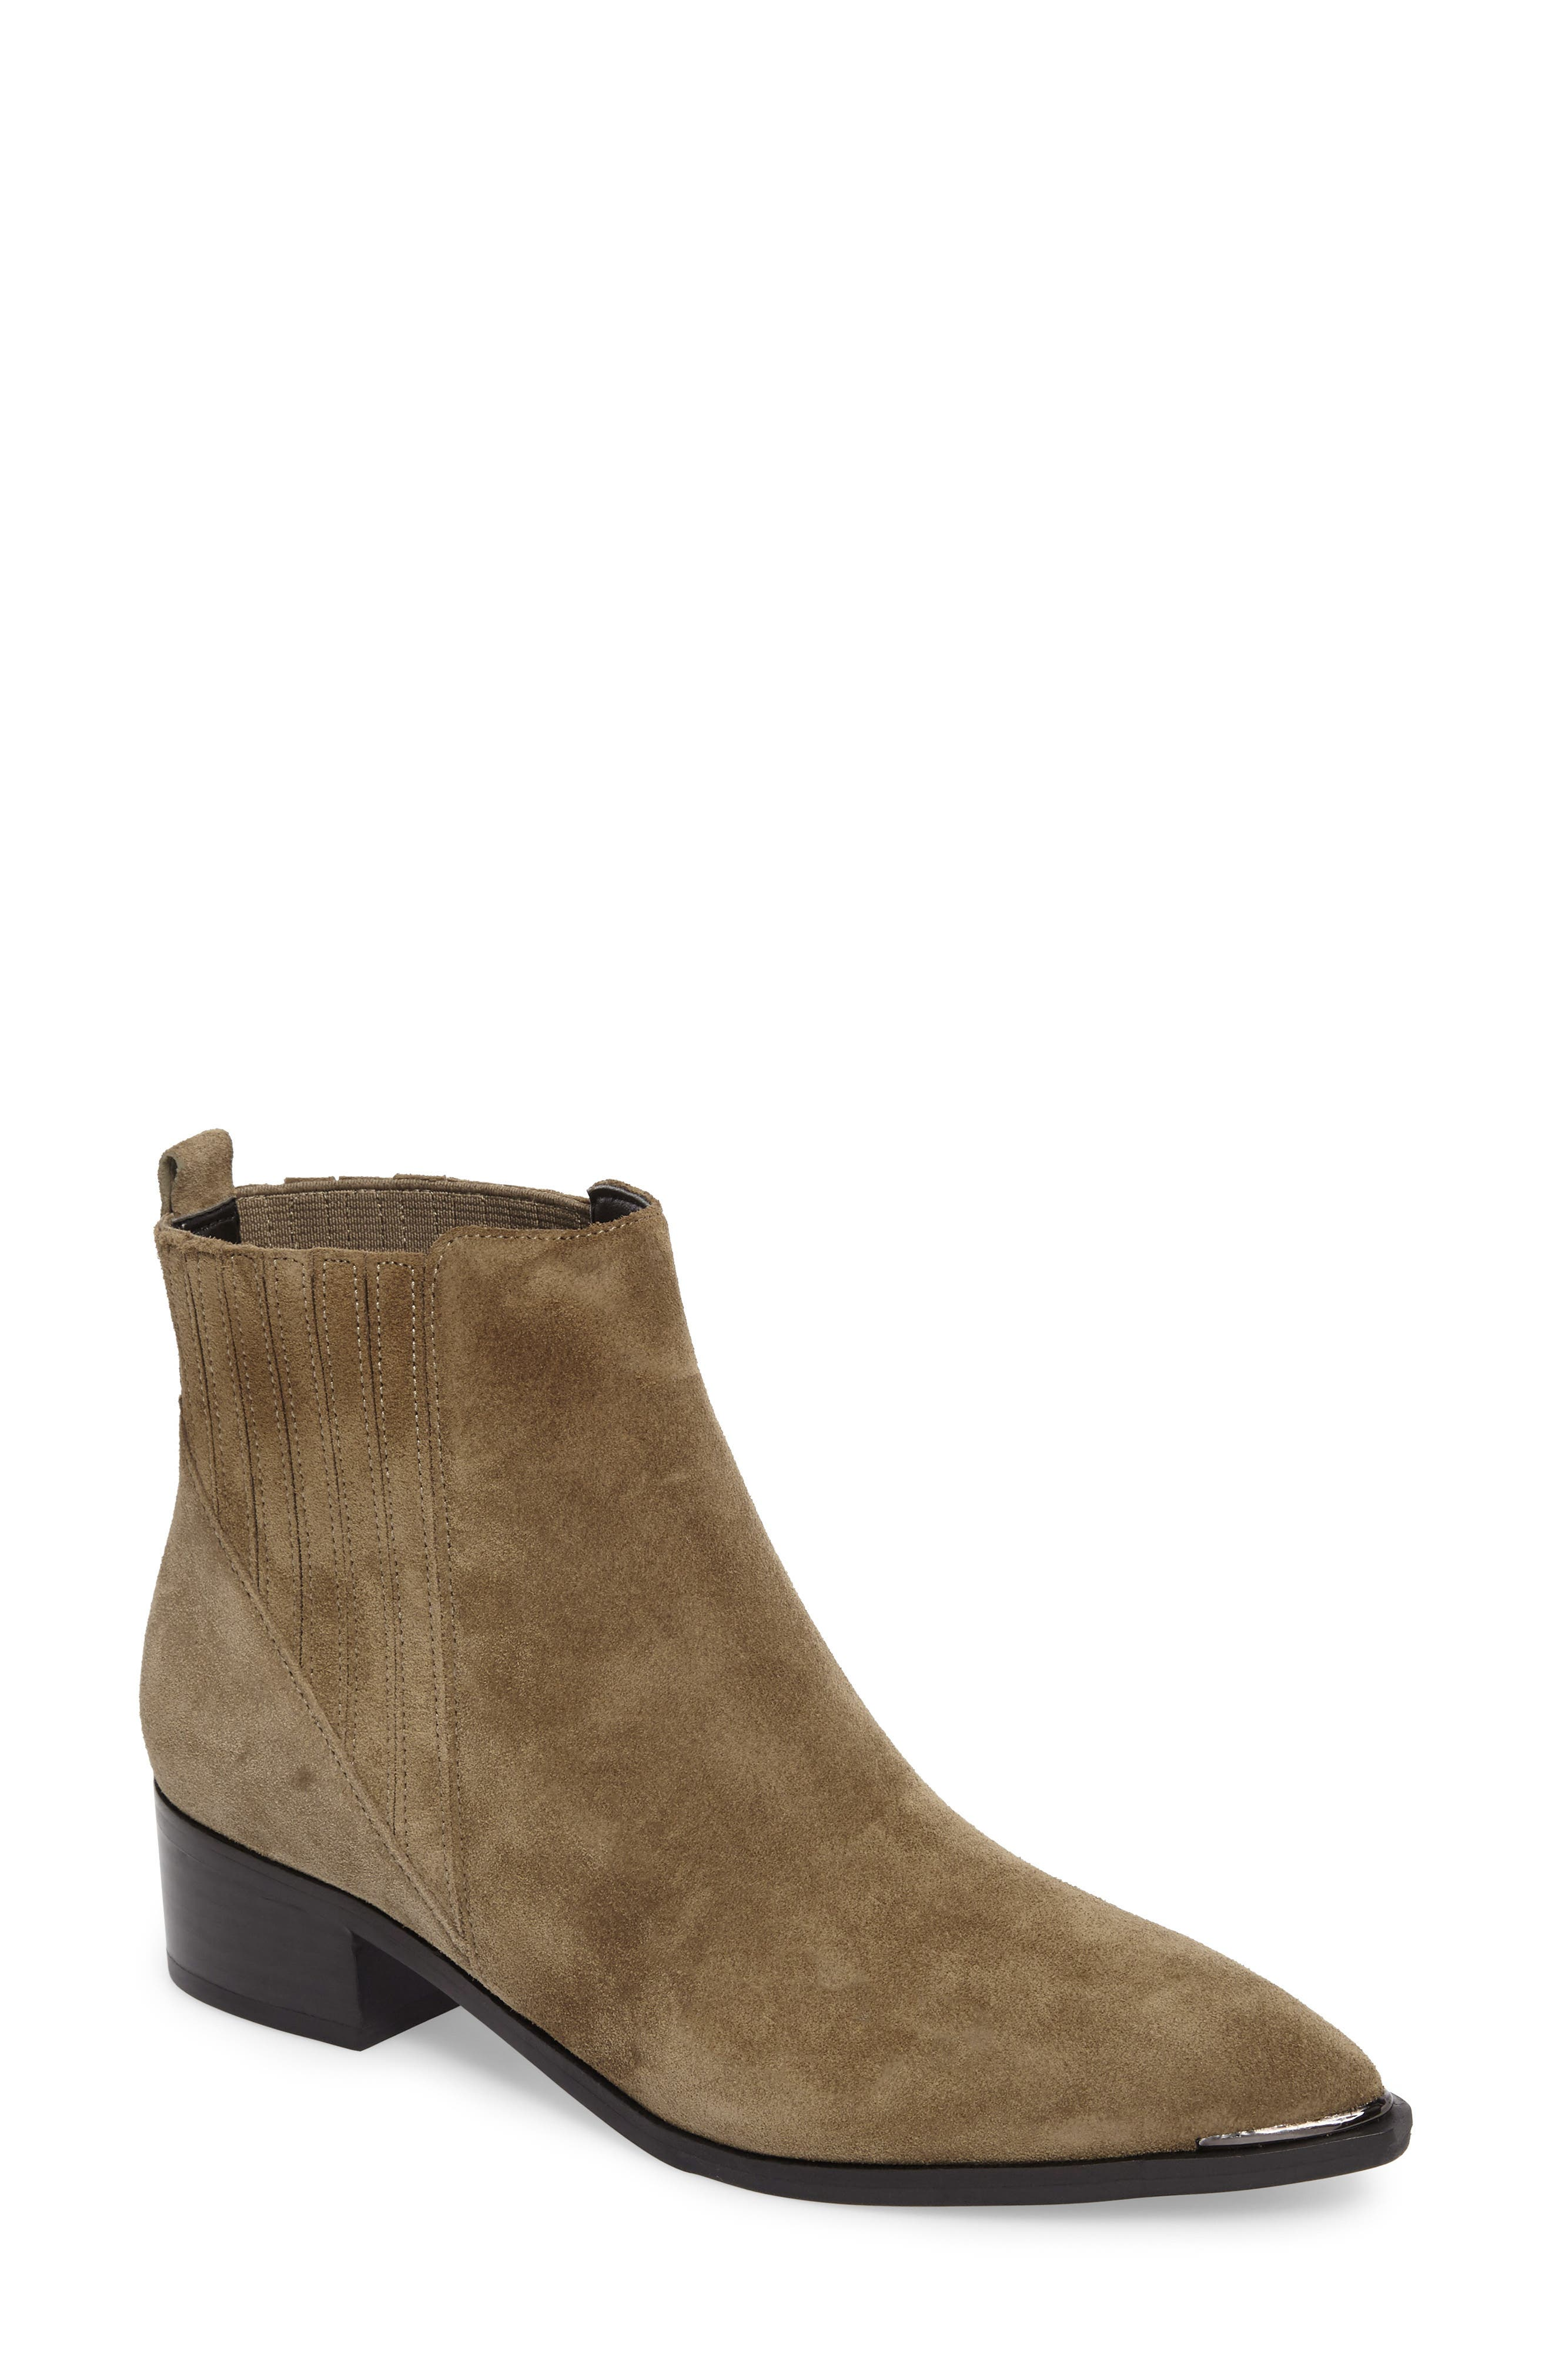 Alternate Image 1 Selected - Marc Fisher LTD Yommi Chelsea Bootie (Women)